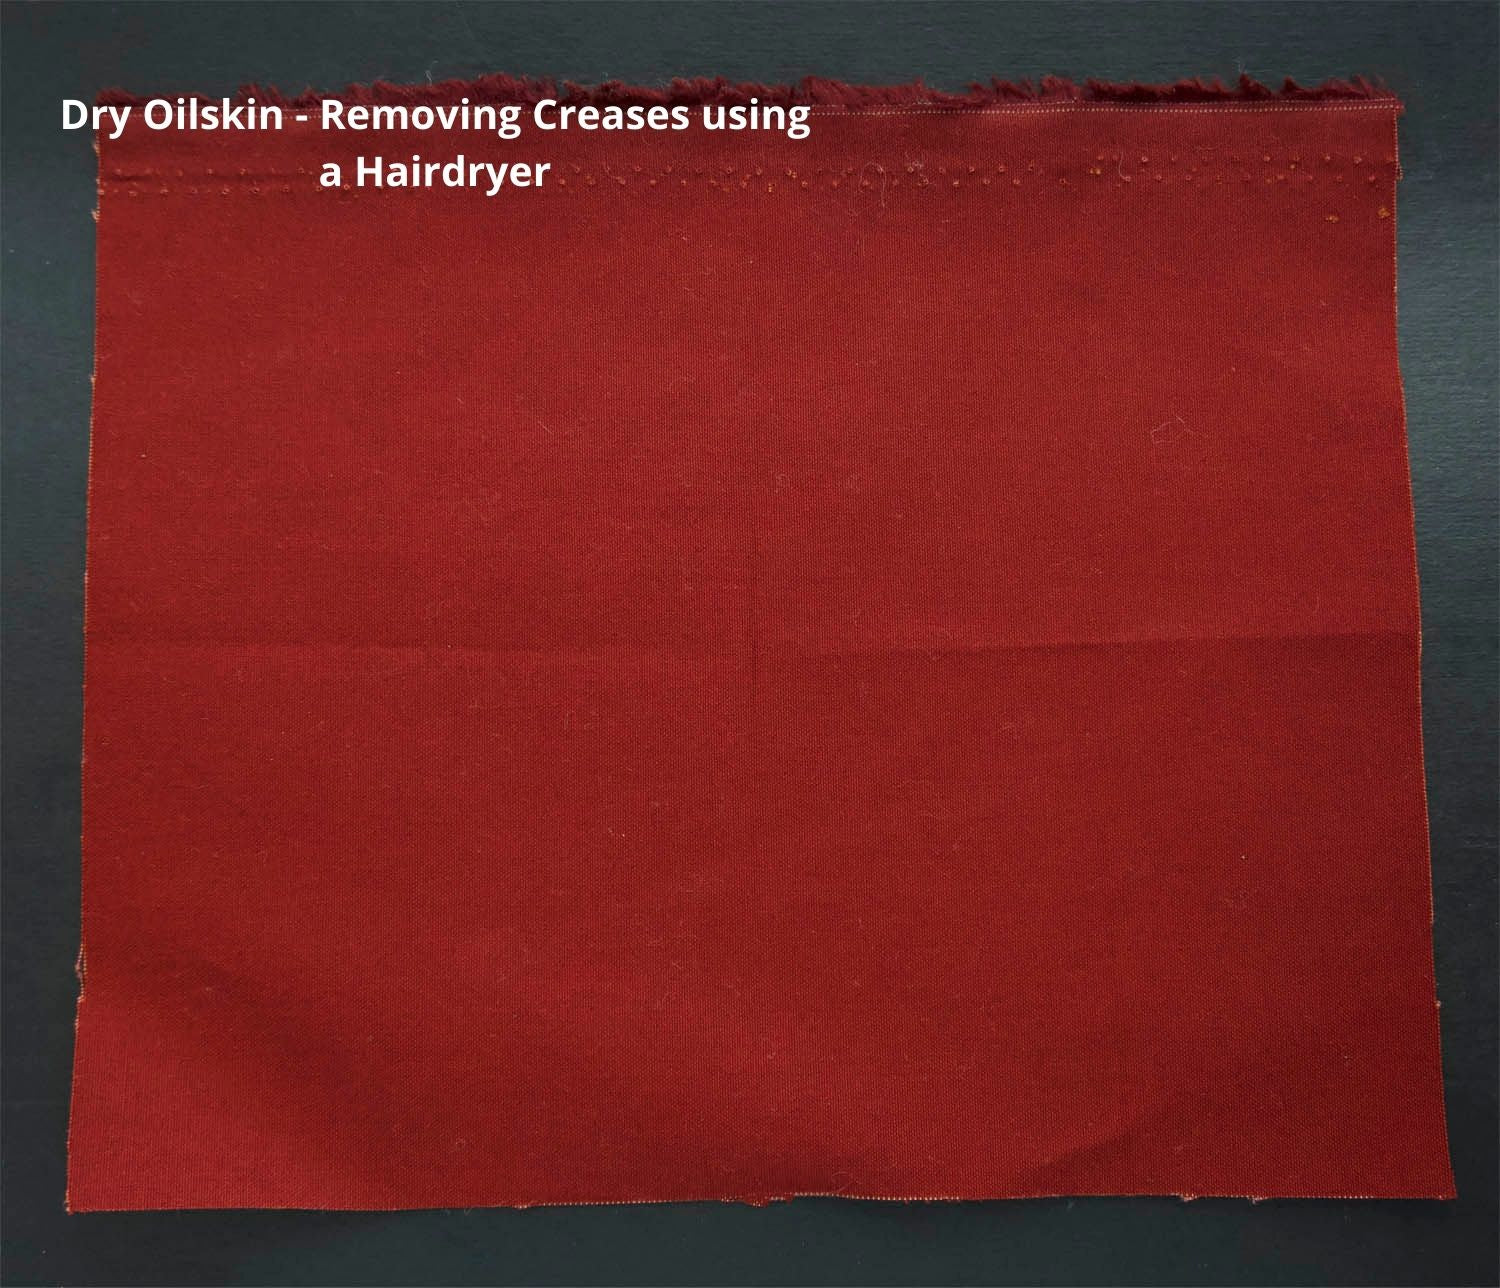 conker coloured traditional oilskin on a dark background